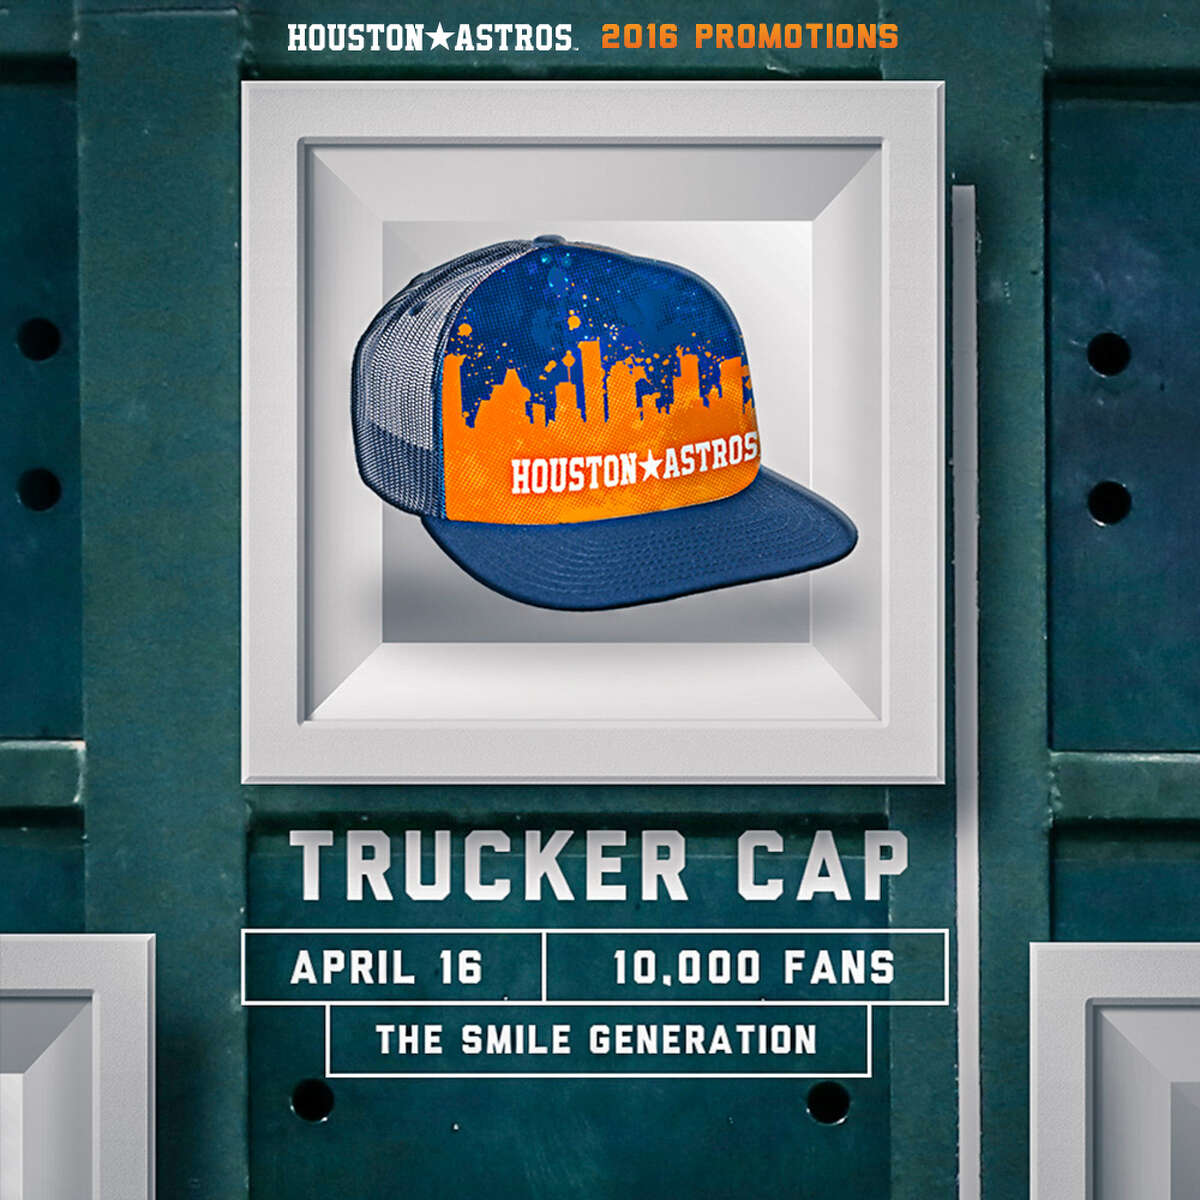 Truckers Cap  (Presented by The Smile Generation) Saturday, April 16 vs. Detroit Tigers First 10,000 fans